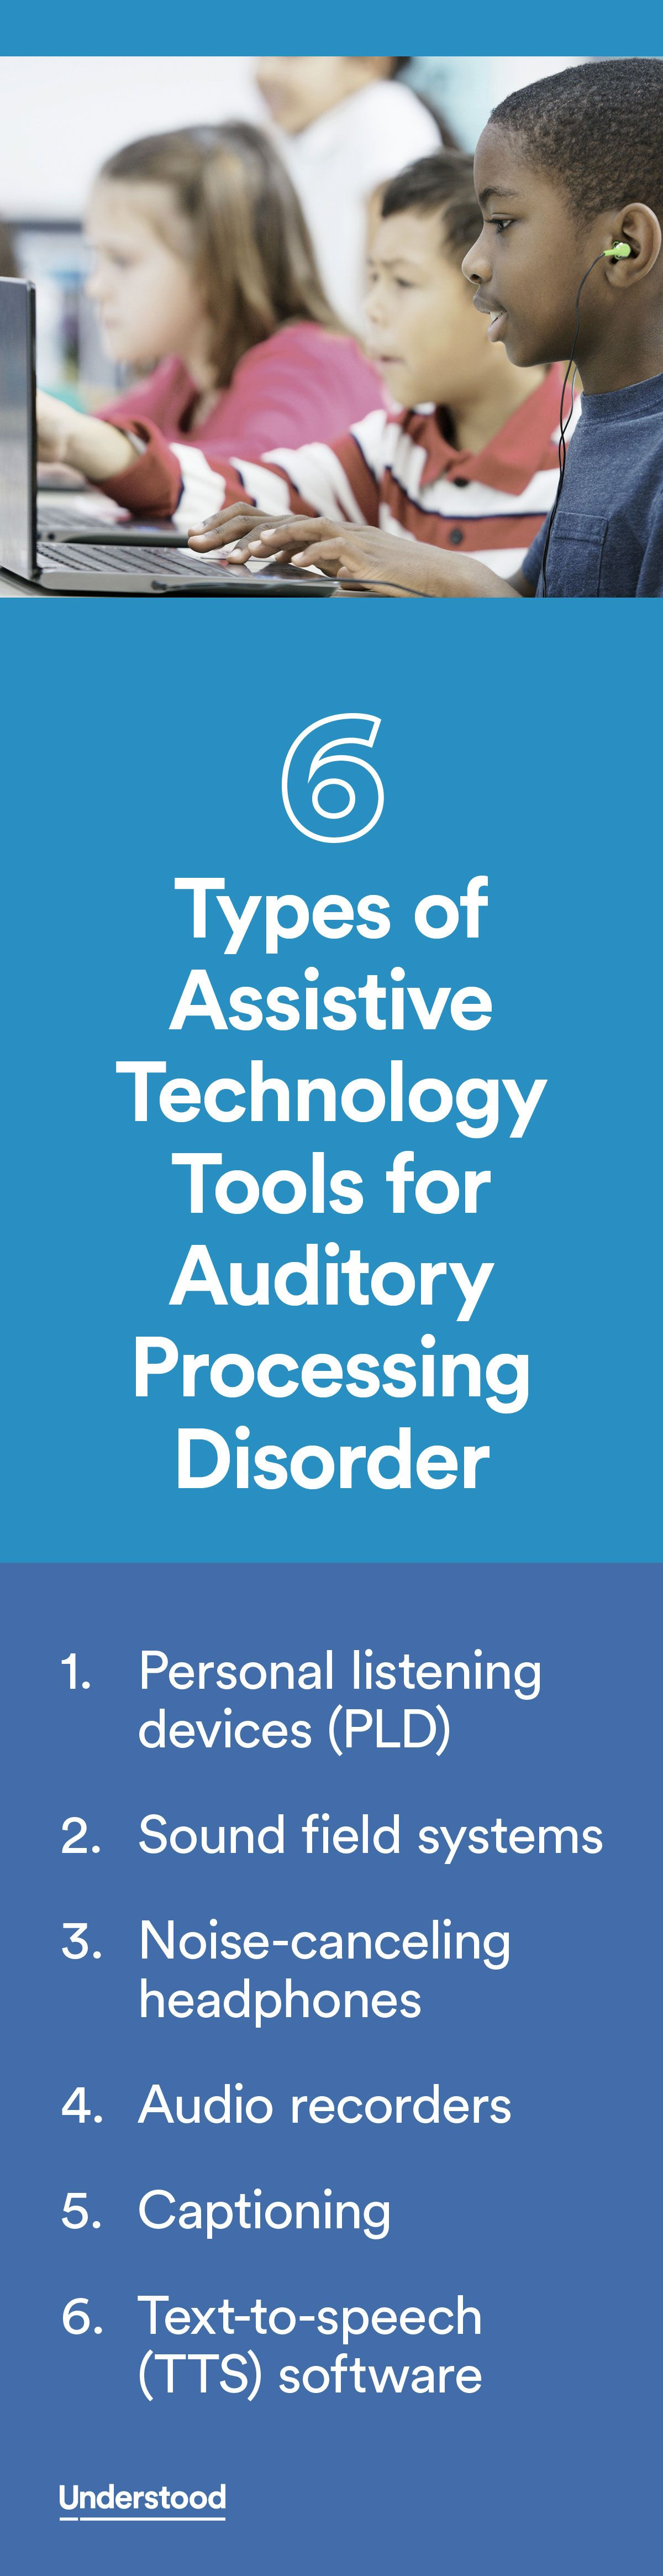 Assistive Technology For Auditory Processing Disorder